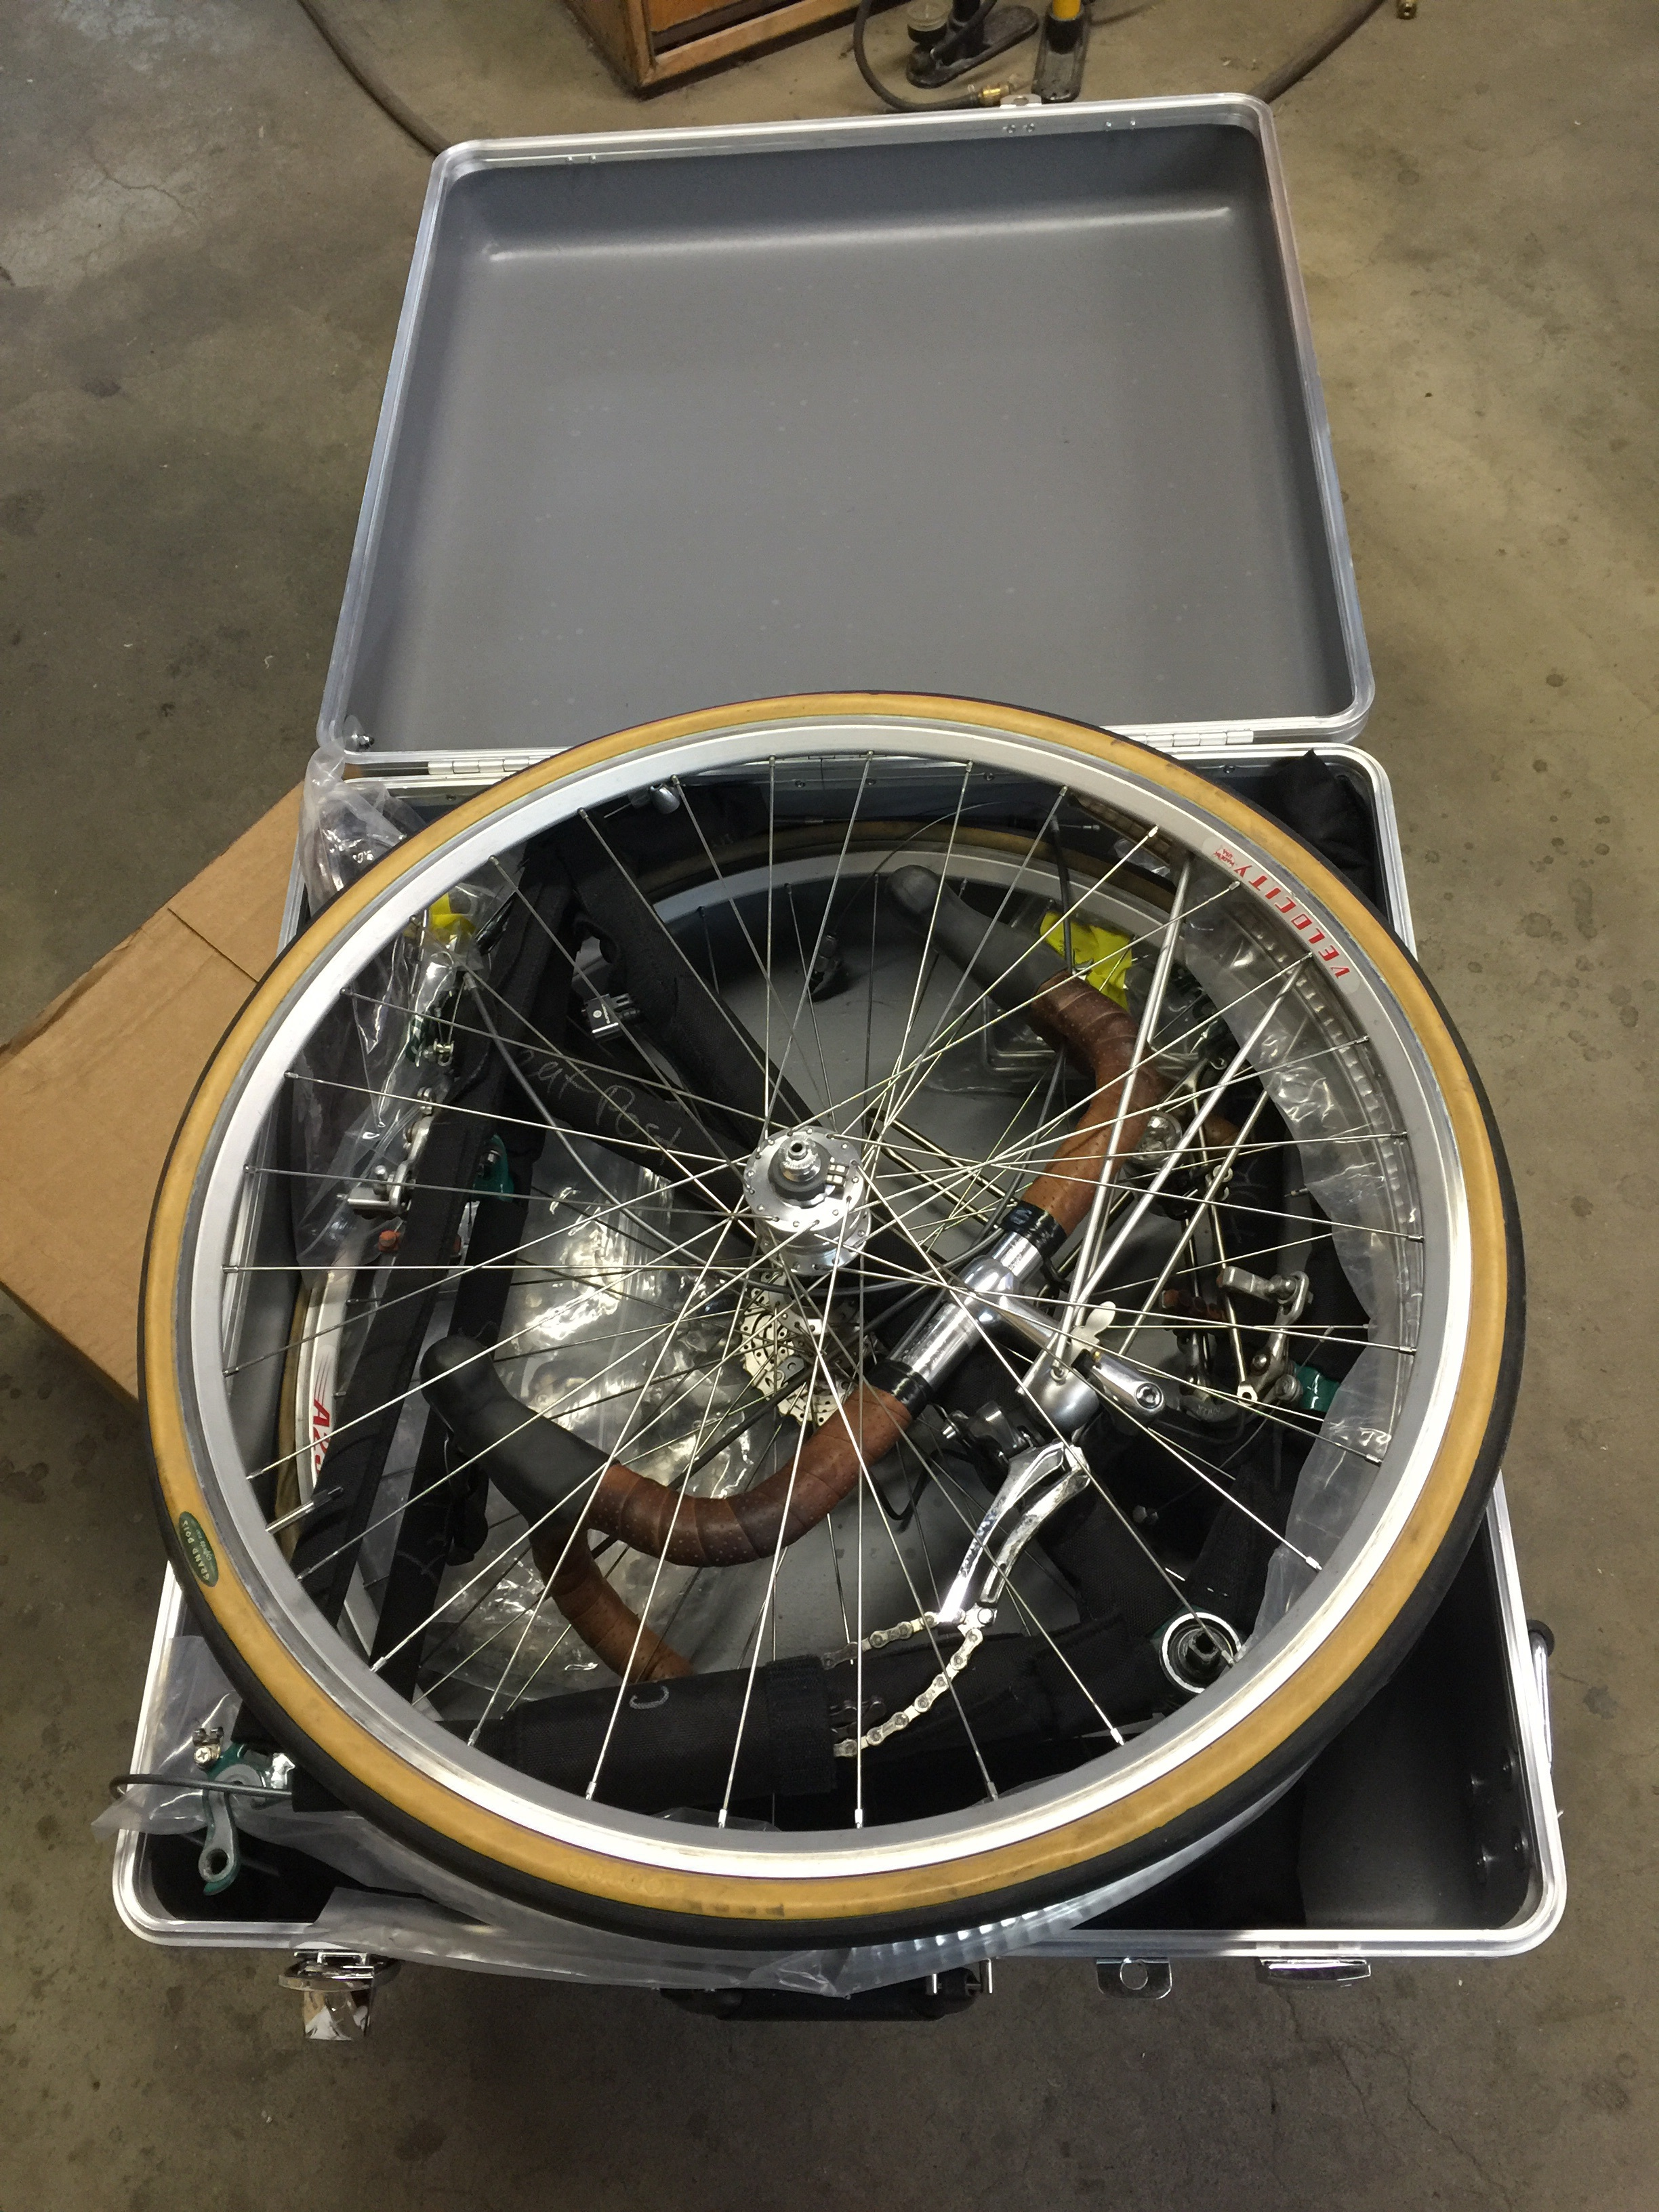 And lastly the rear wheel. It usually easier to insert the wheel into the lid of the case before closing it. It's kind of tight with with everything in there, but don't worry it'll fit.